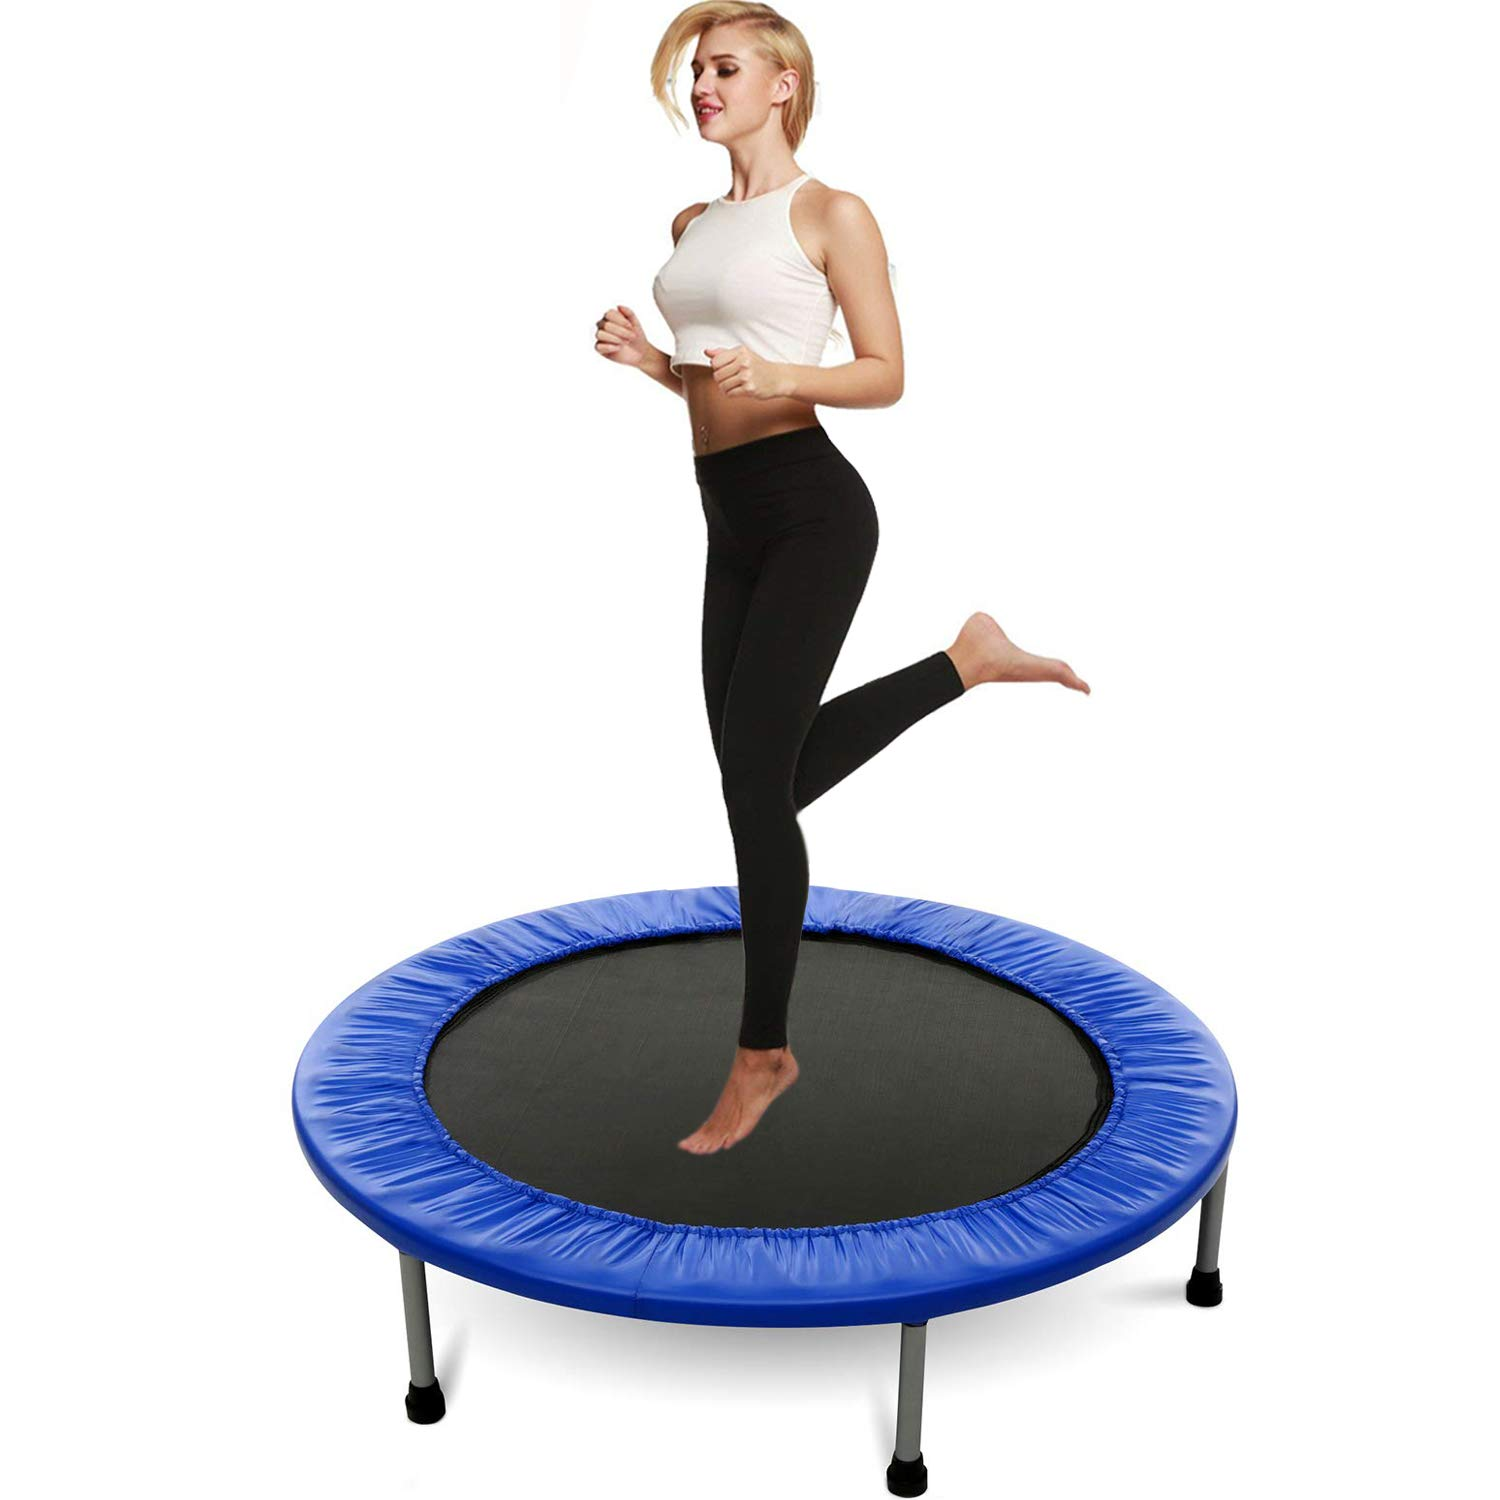 Hosmat Mini Exercise Trampoline for Adults or Kids - Indoor Fitness Rebounder Trampoline with Safety Pad | Max. Load 200LBS (Blue) by Balanu